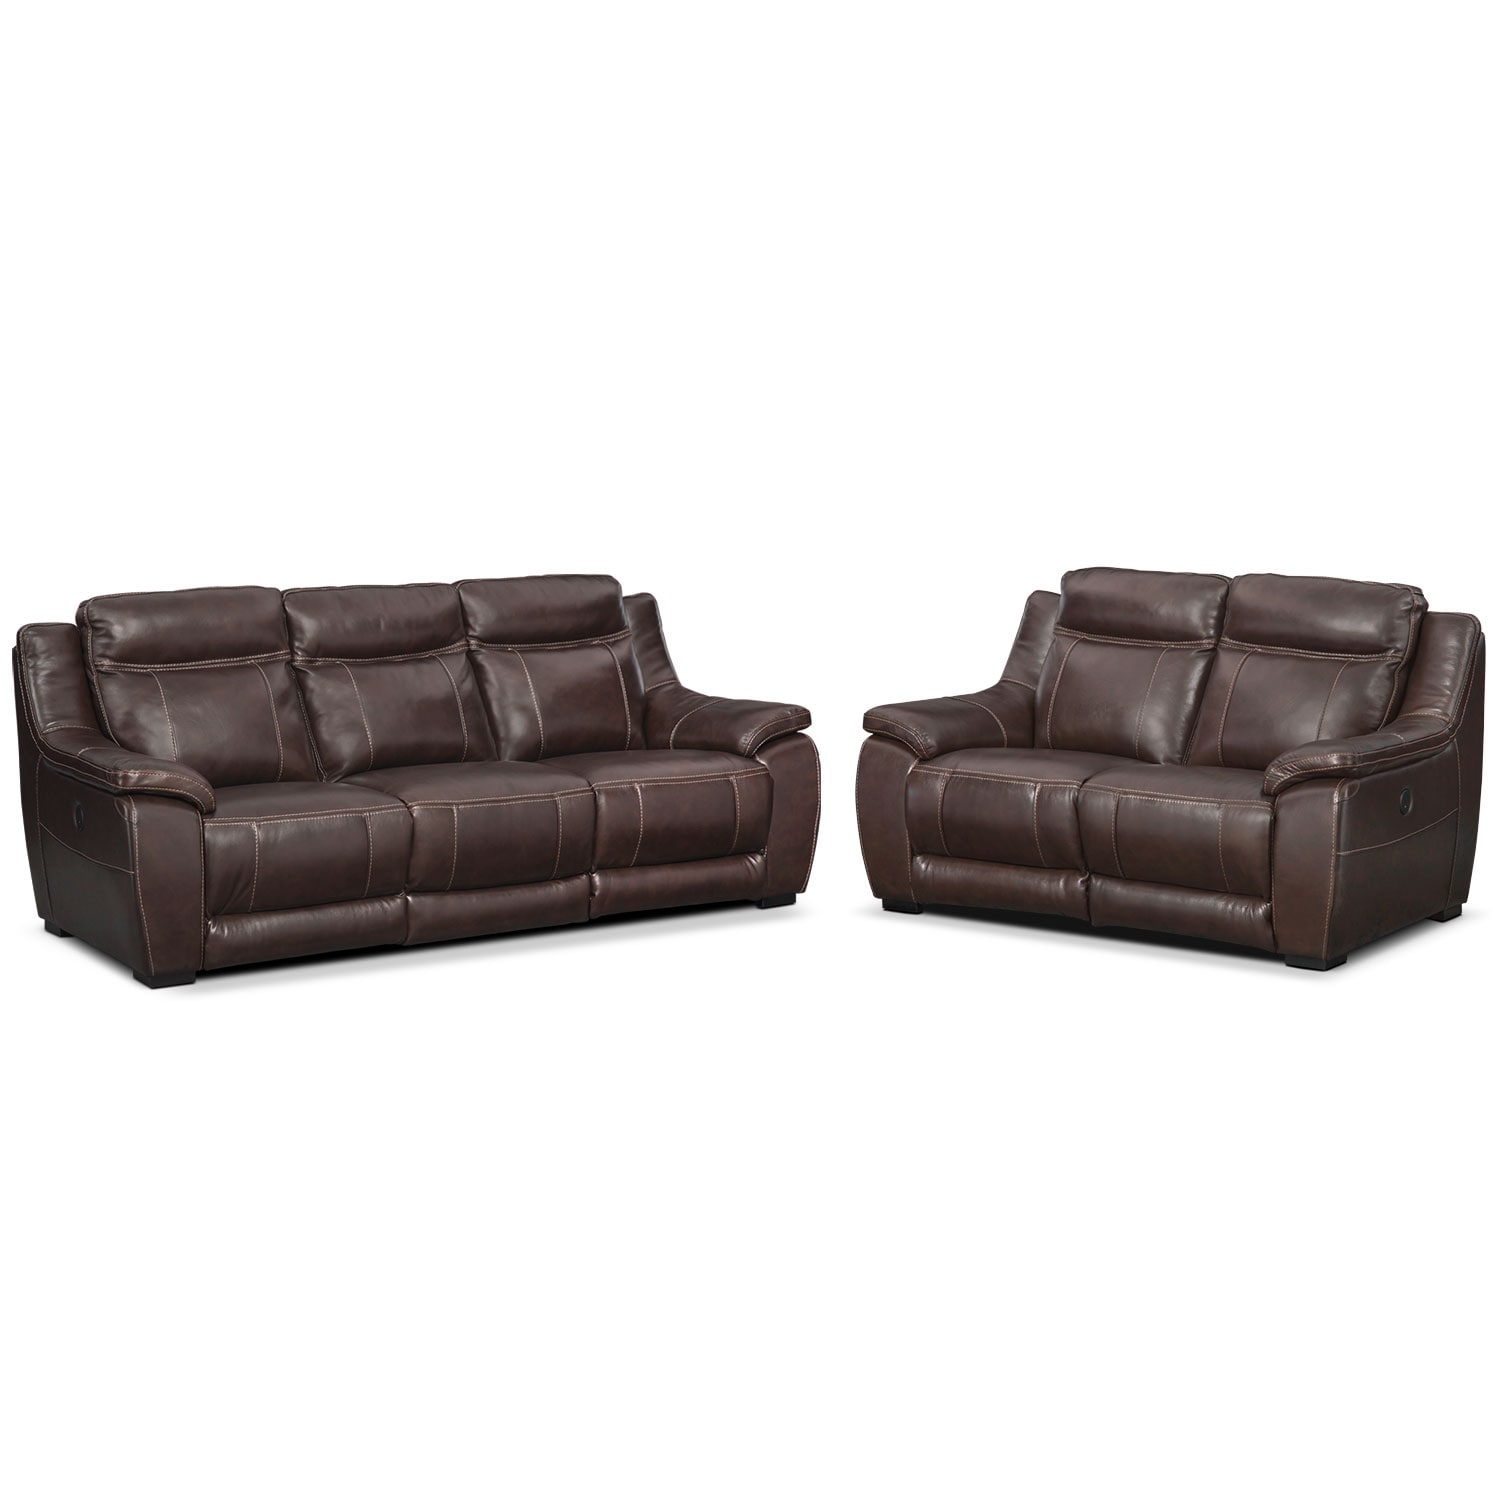 Lido power reclining sofa and reclining loveseat set Power reclining sofas and loveseats